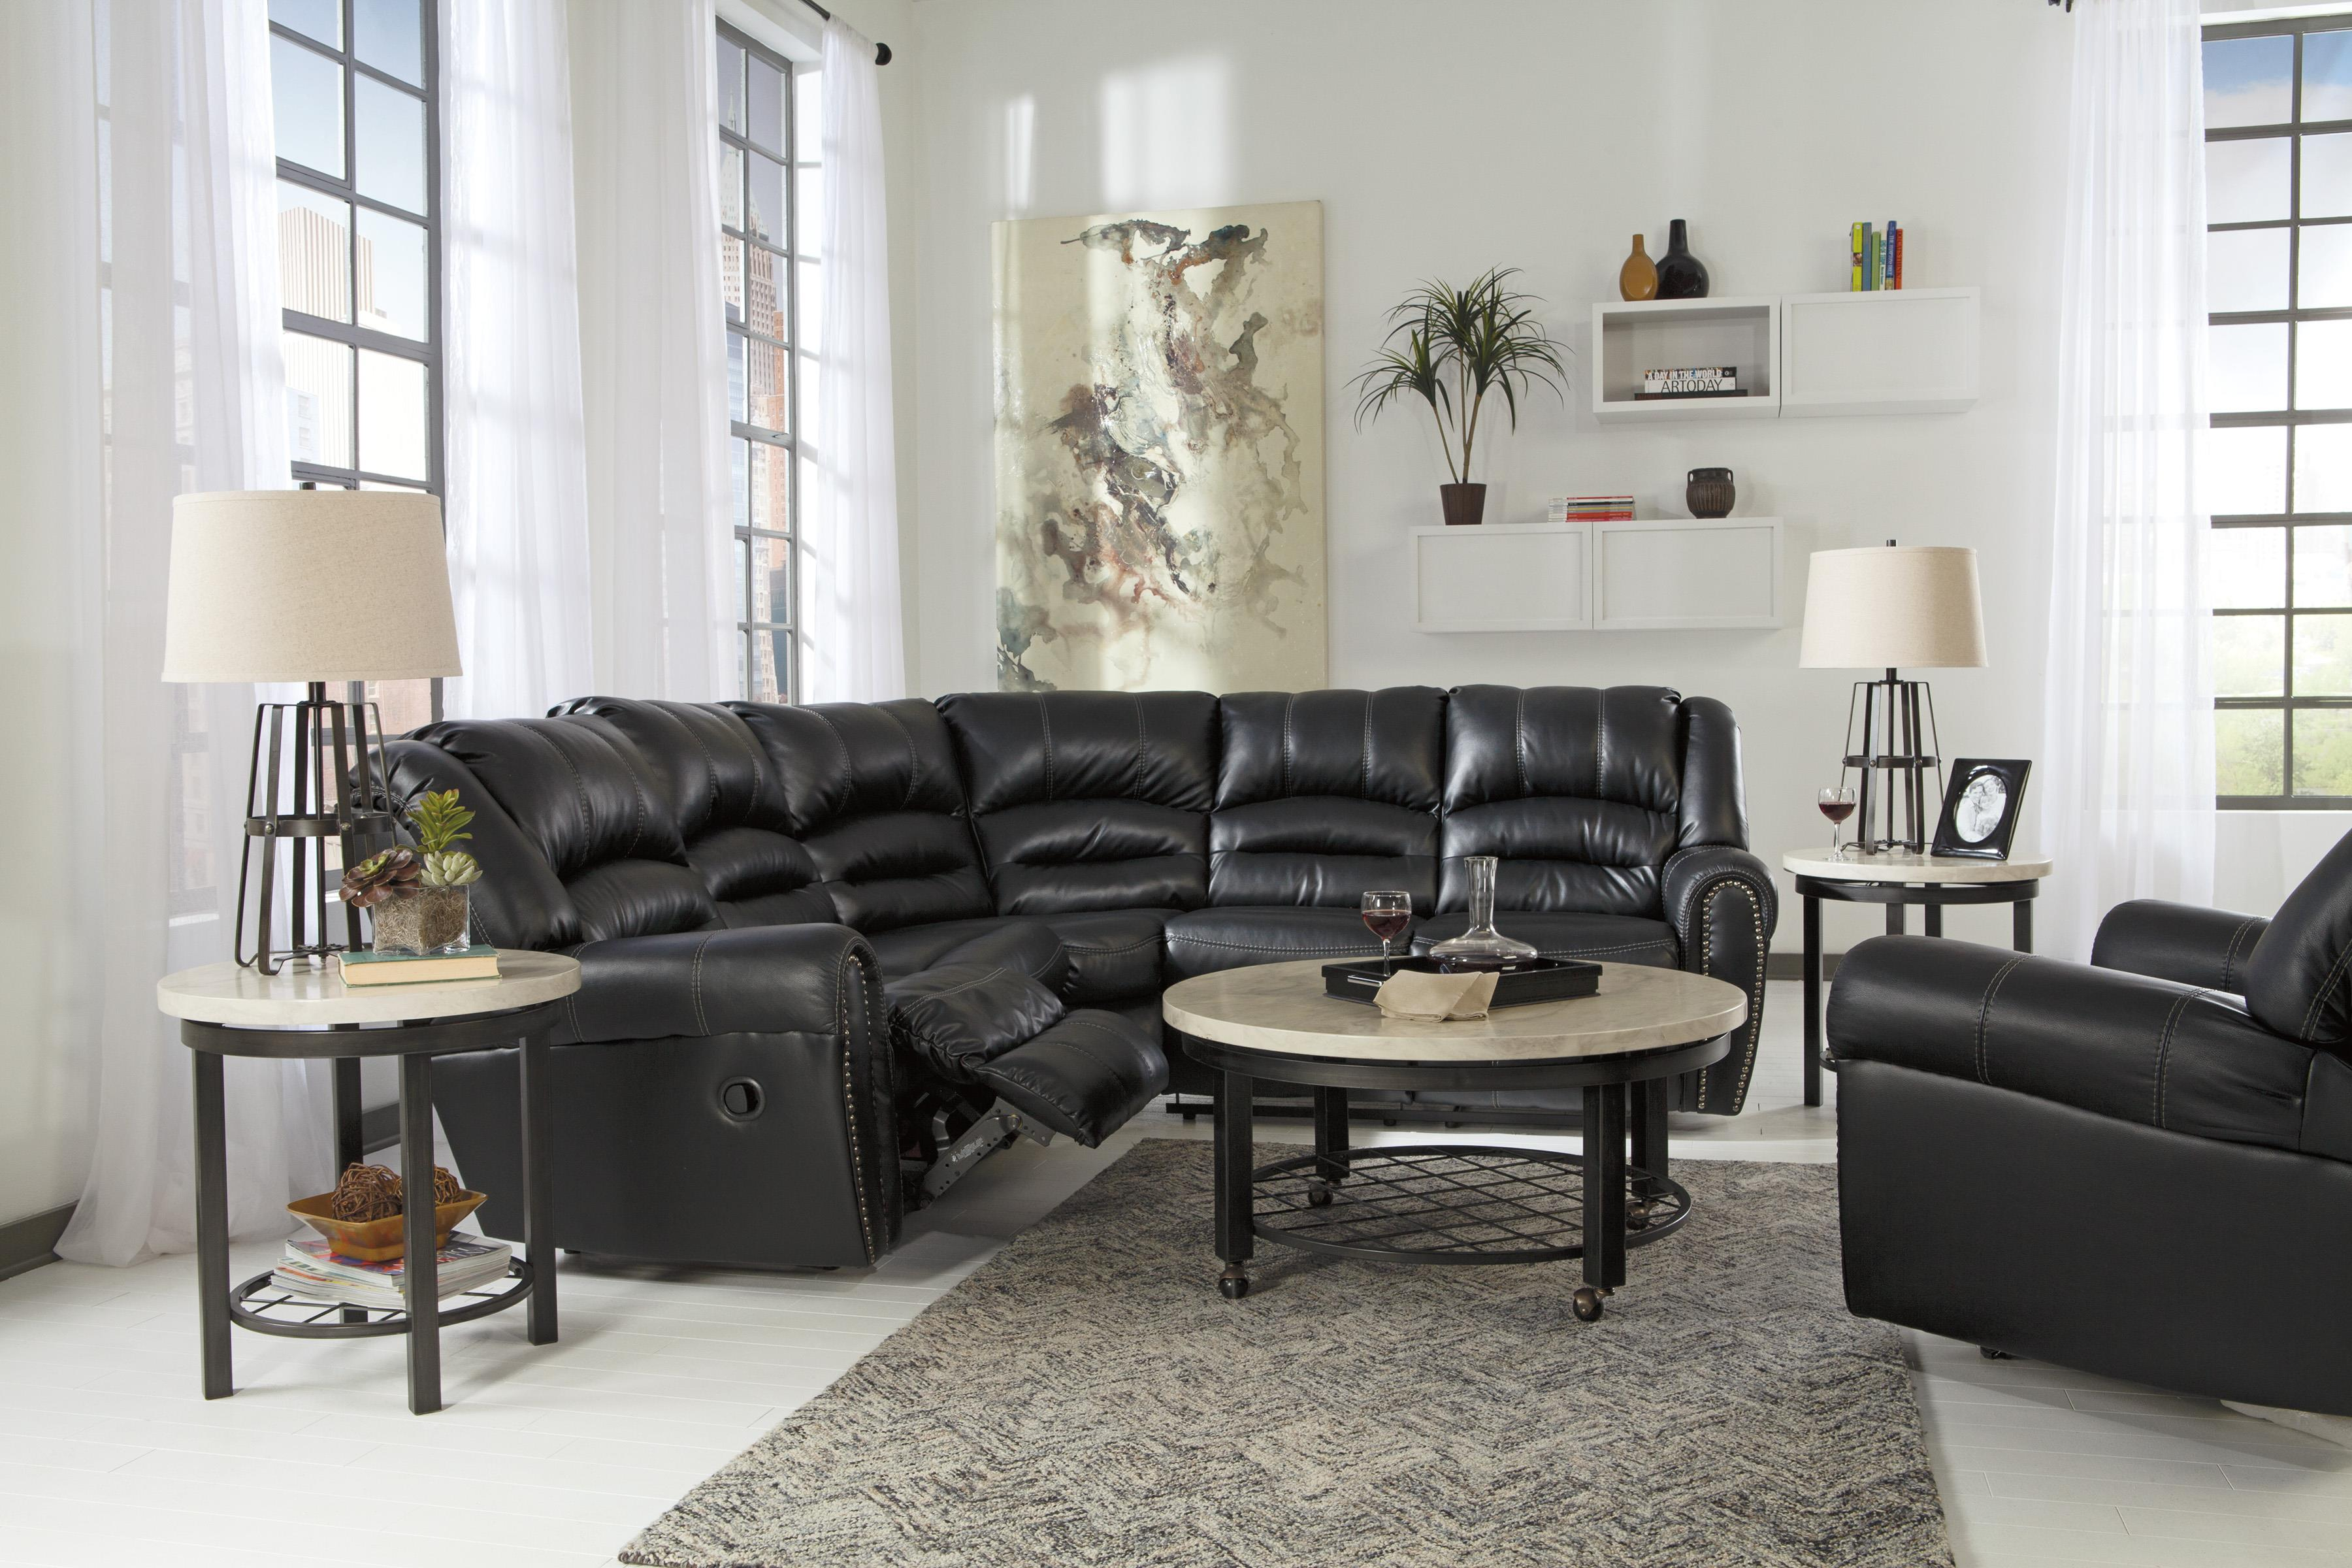 Signature Design By Ashley Manzanola Reclining Living Room Group Value City Furniture